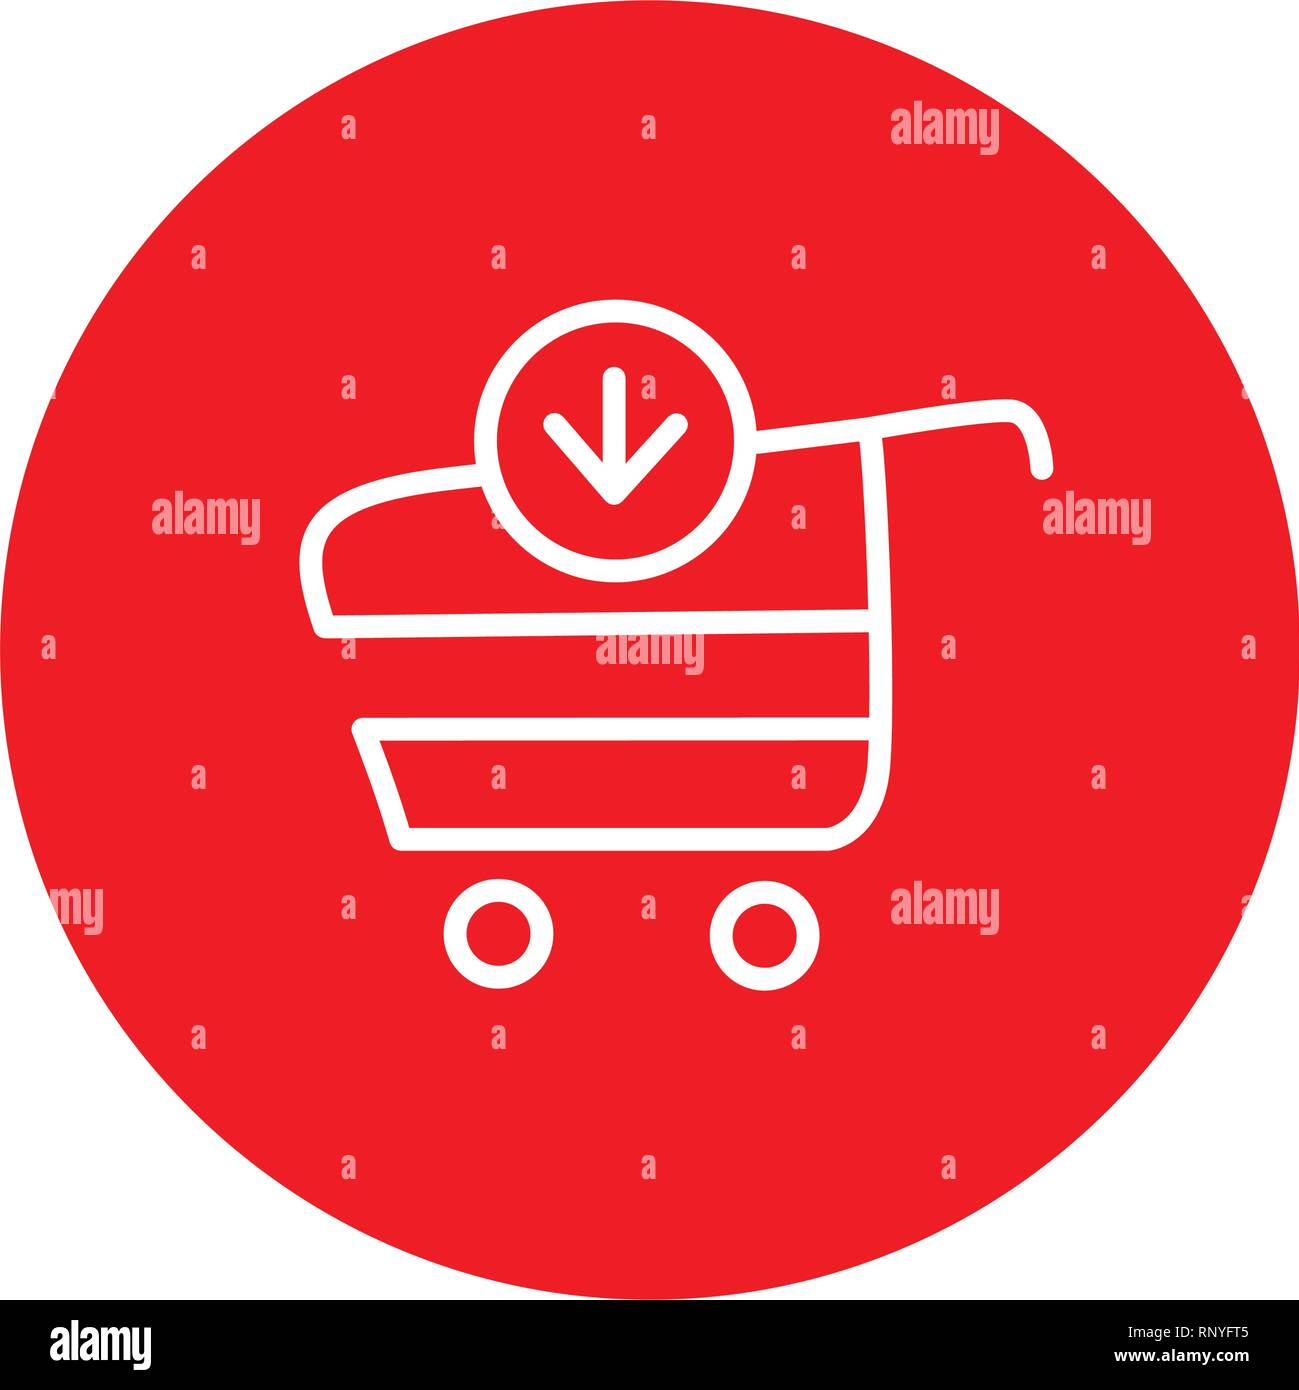 Add Item Shopping Cart Ecommerce Outline Red Circle Vector Icon Illustration Graphic Design - Stock Image